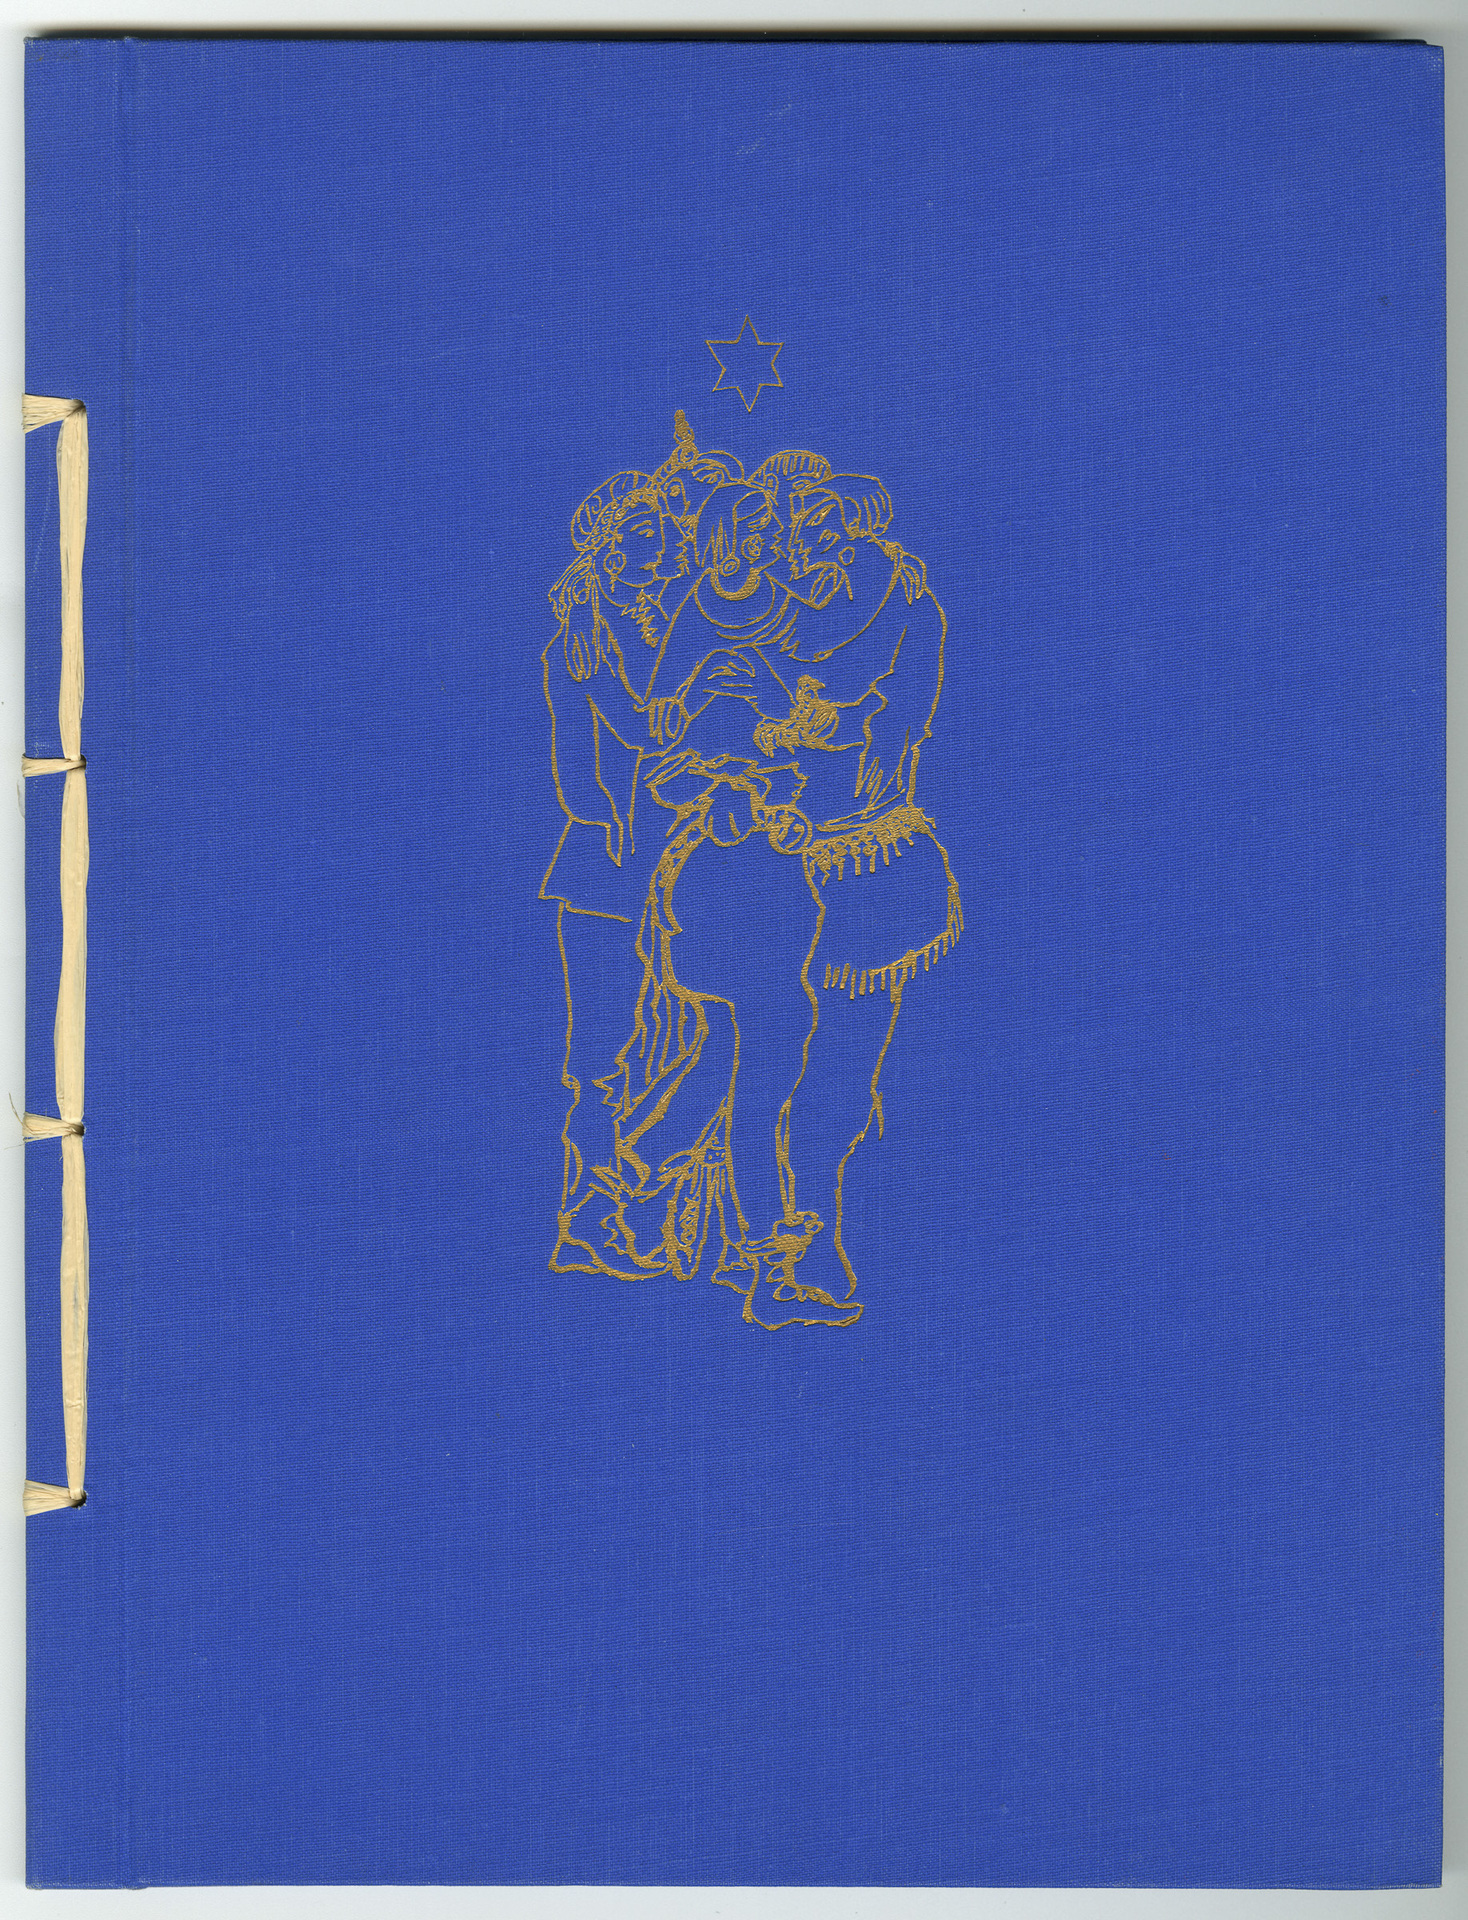 »The Bond of Wild Jews« from Thebes. Poems and Lithographs (cover)